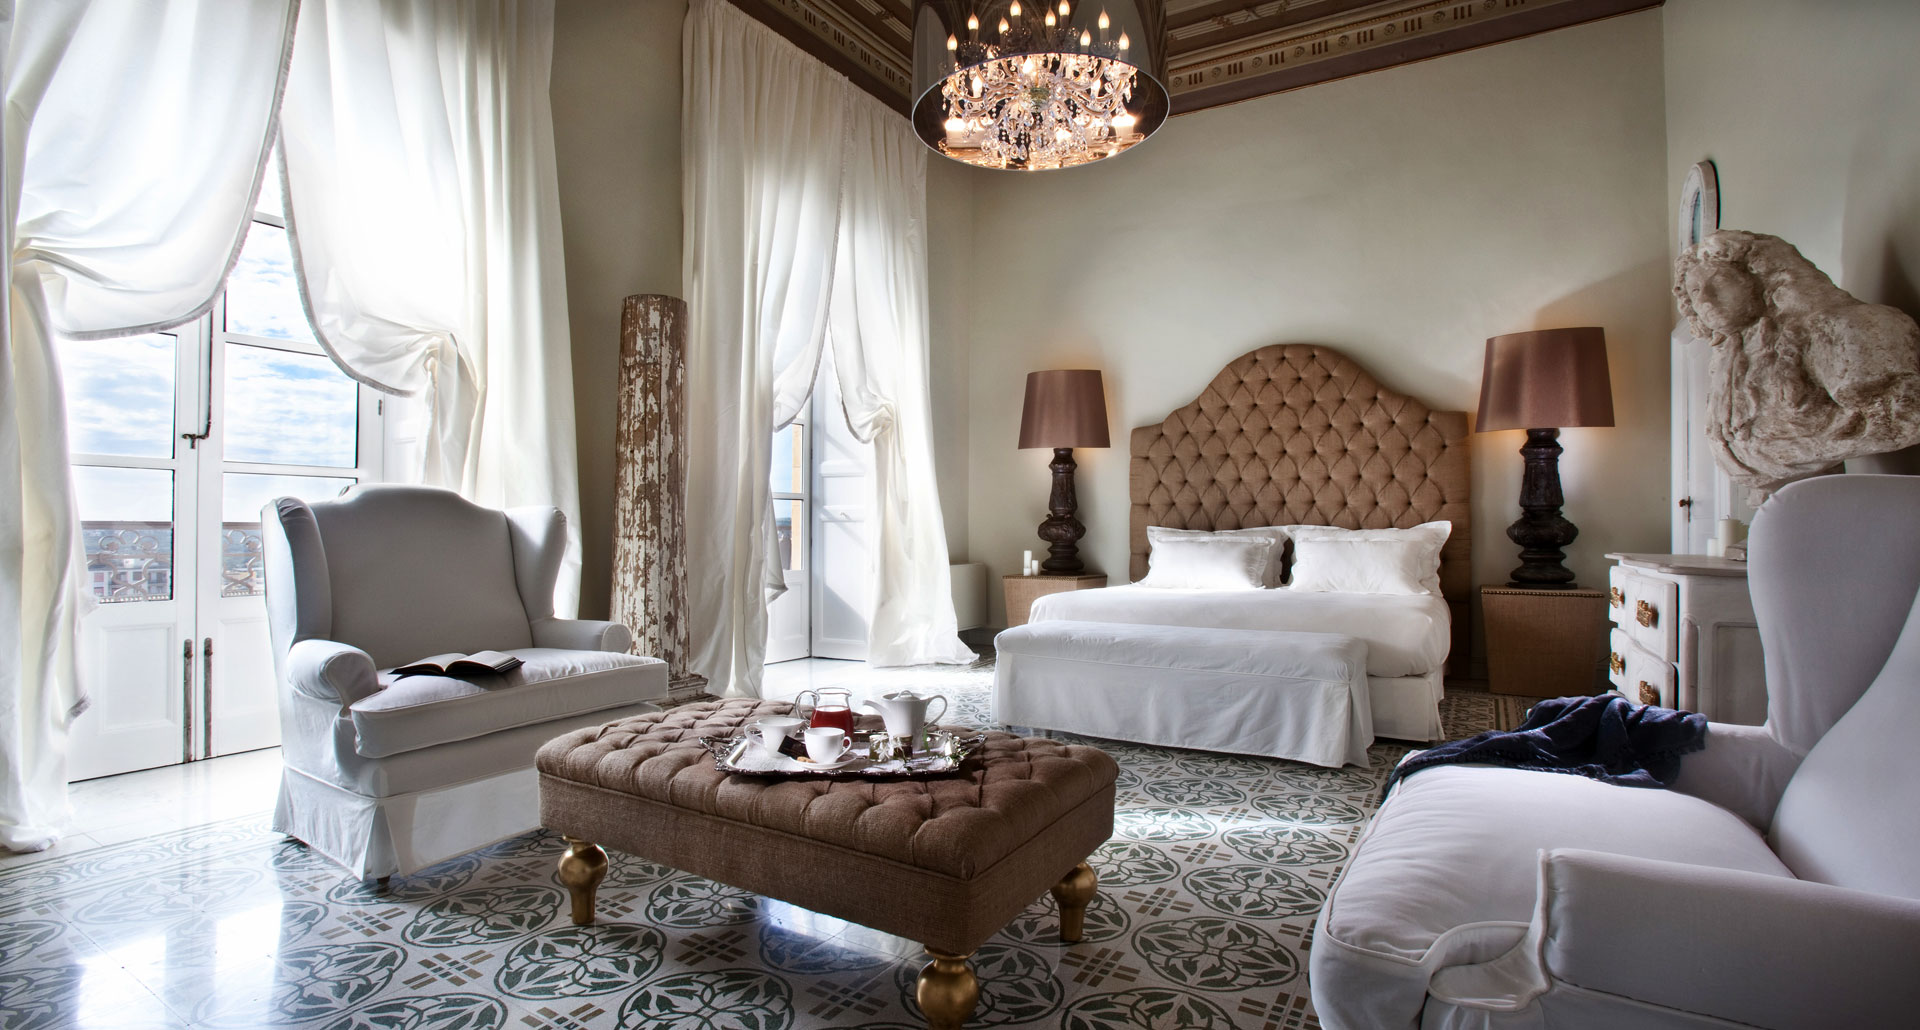 Seven Rooms Villadorata - boutique hotel in Noto